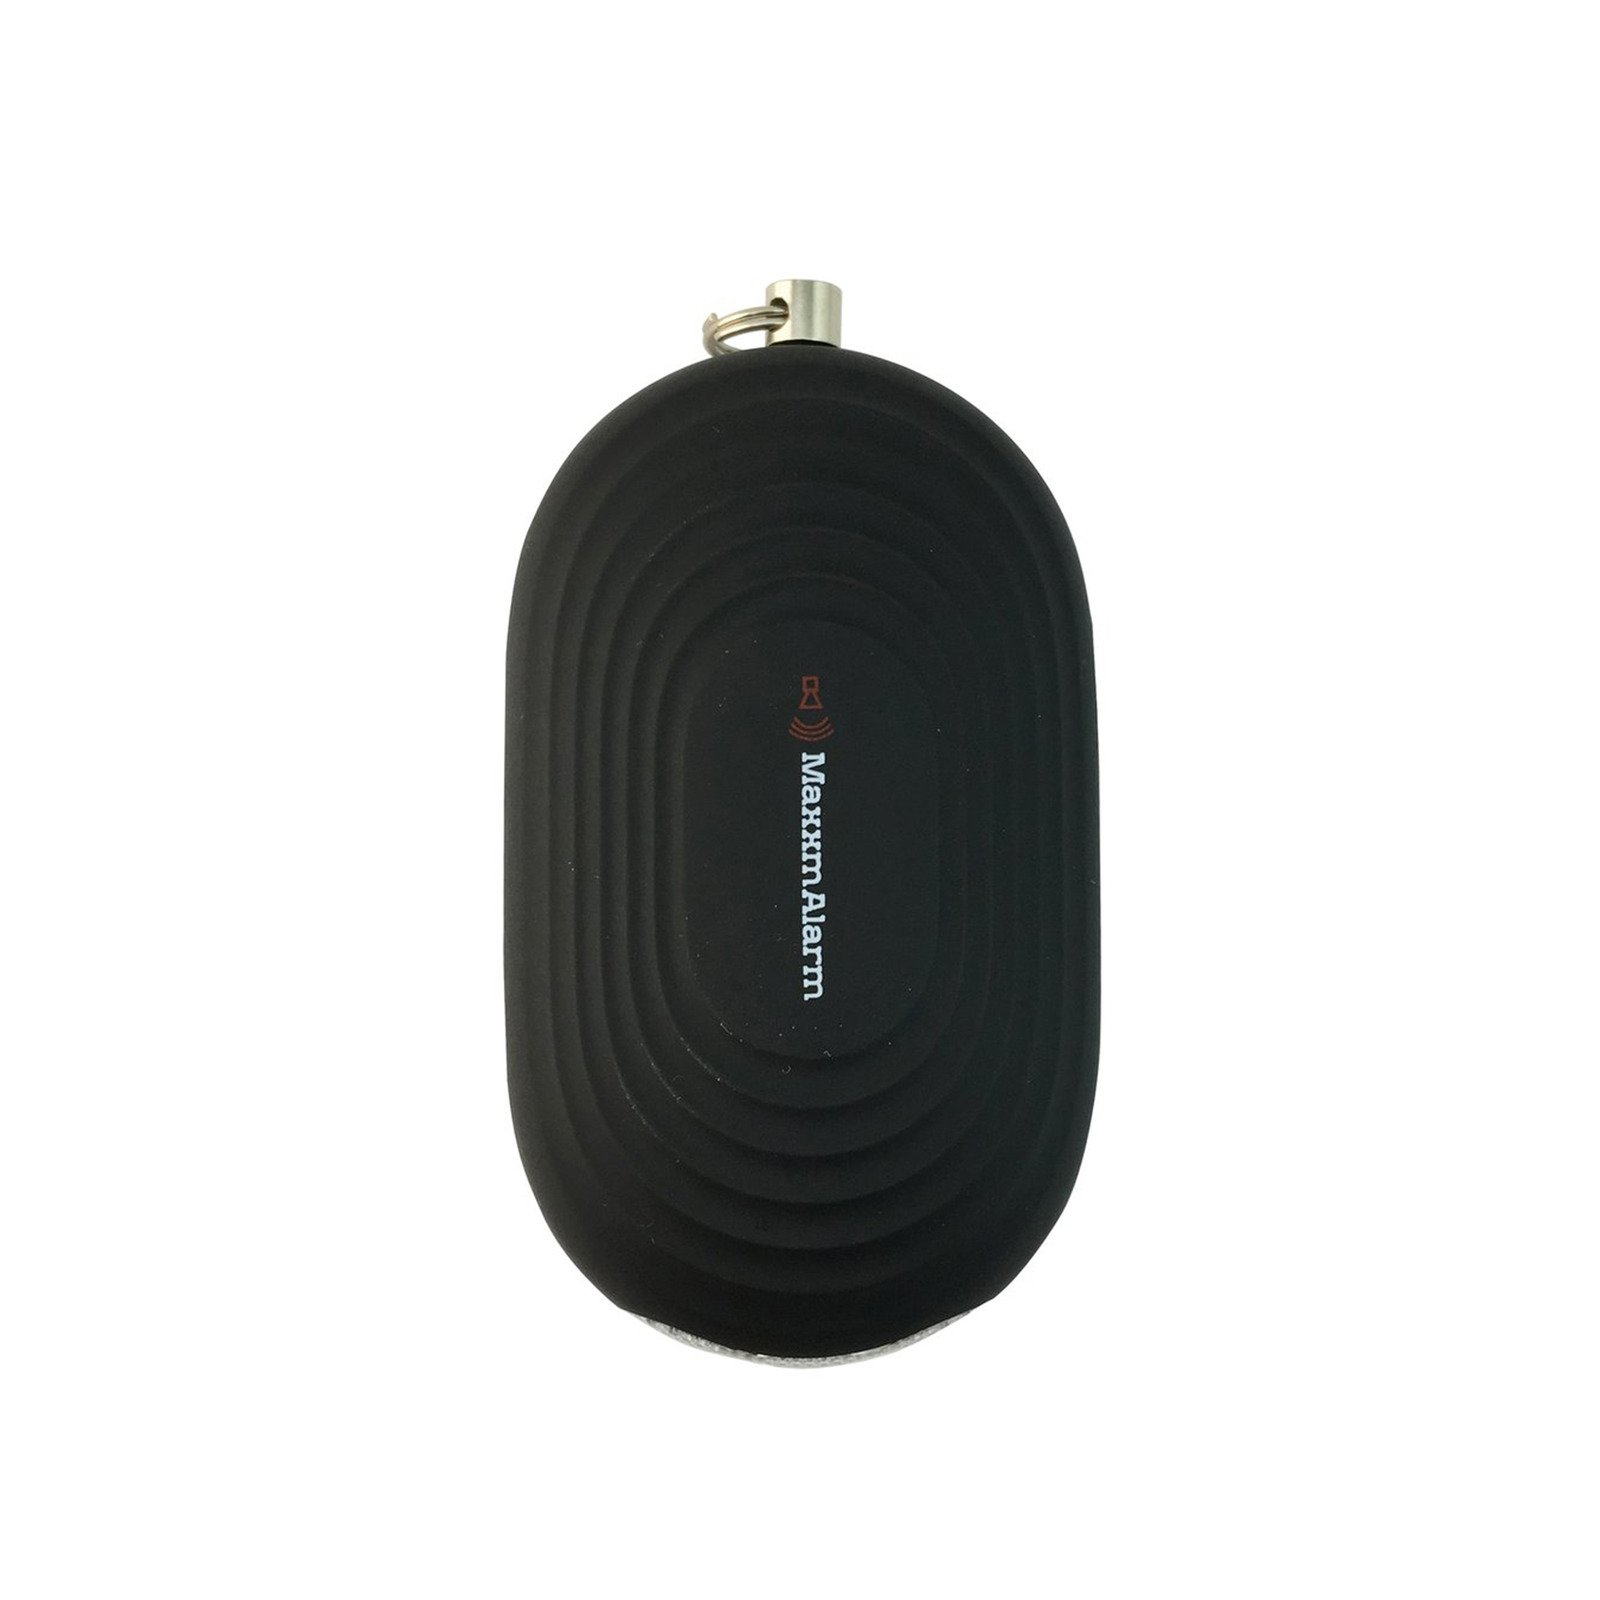 iMaxAlarm Portable Personal Alarm With Light (Matte Black)